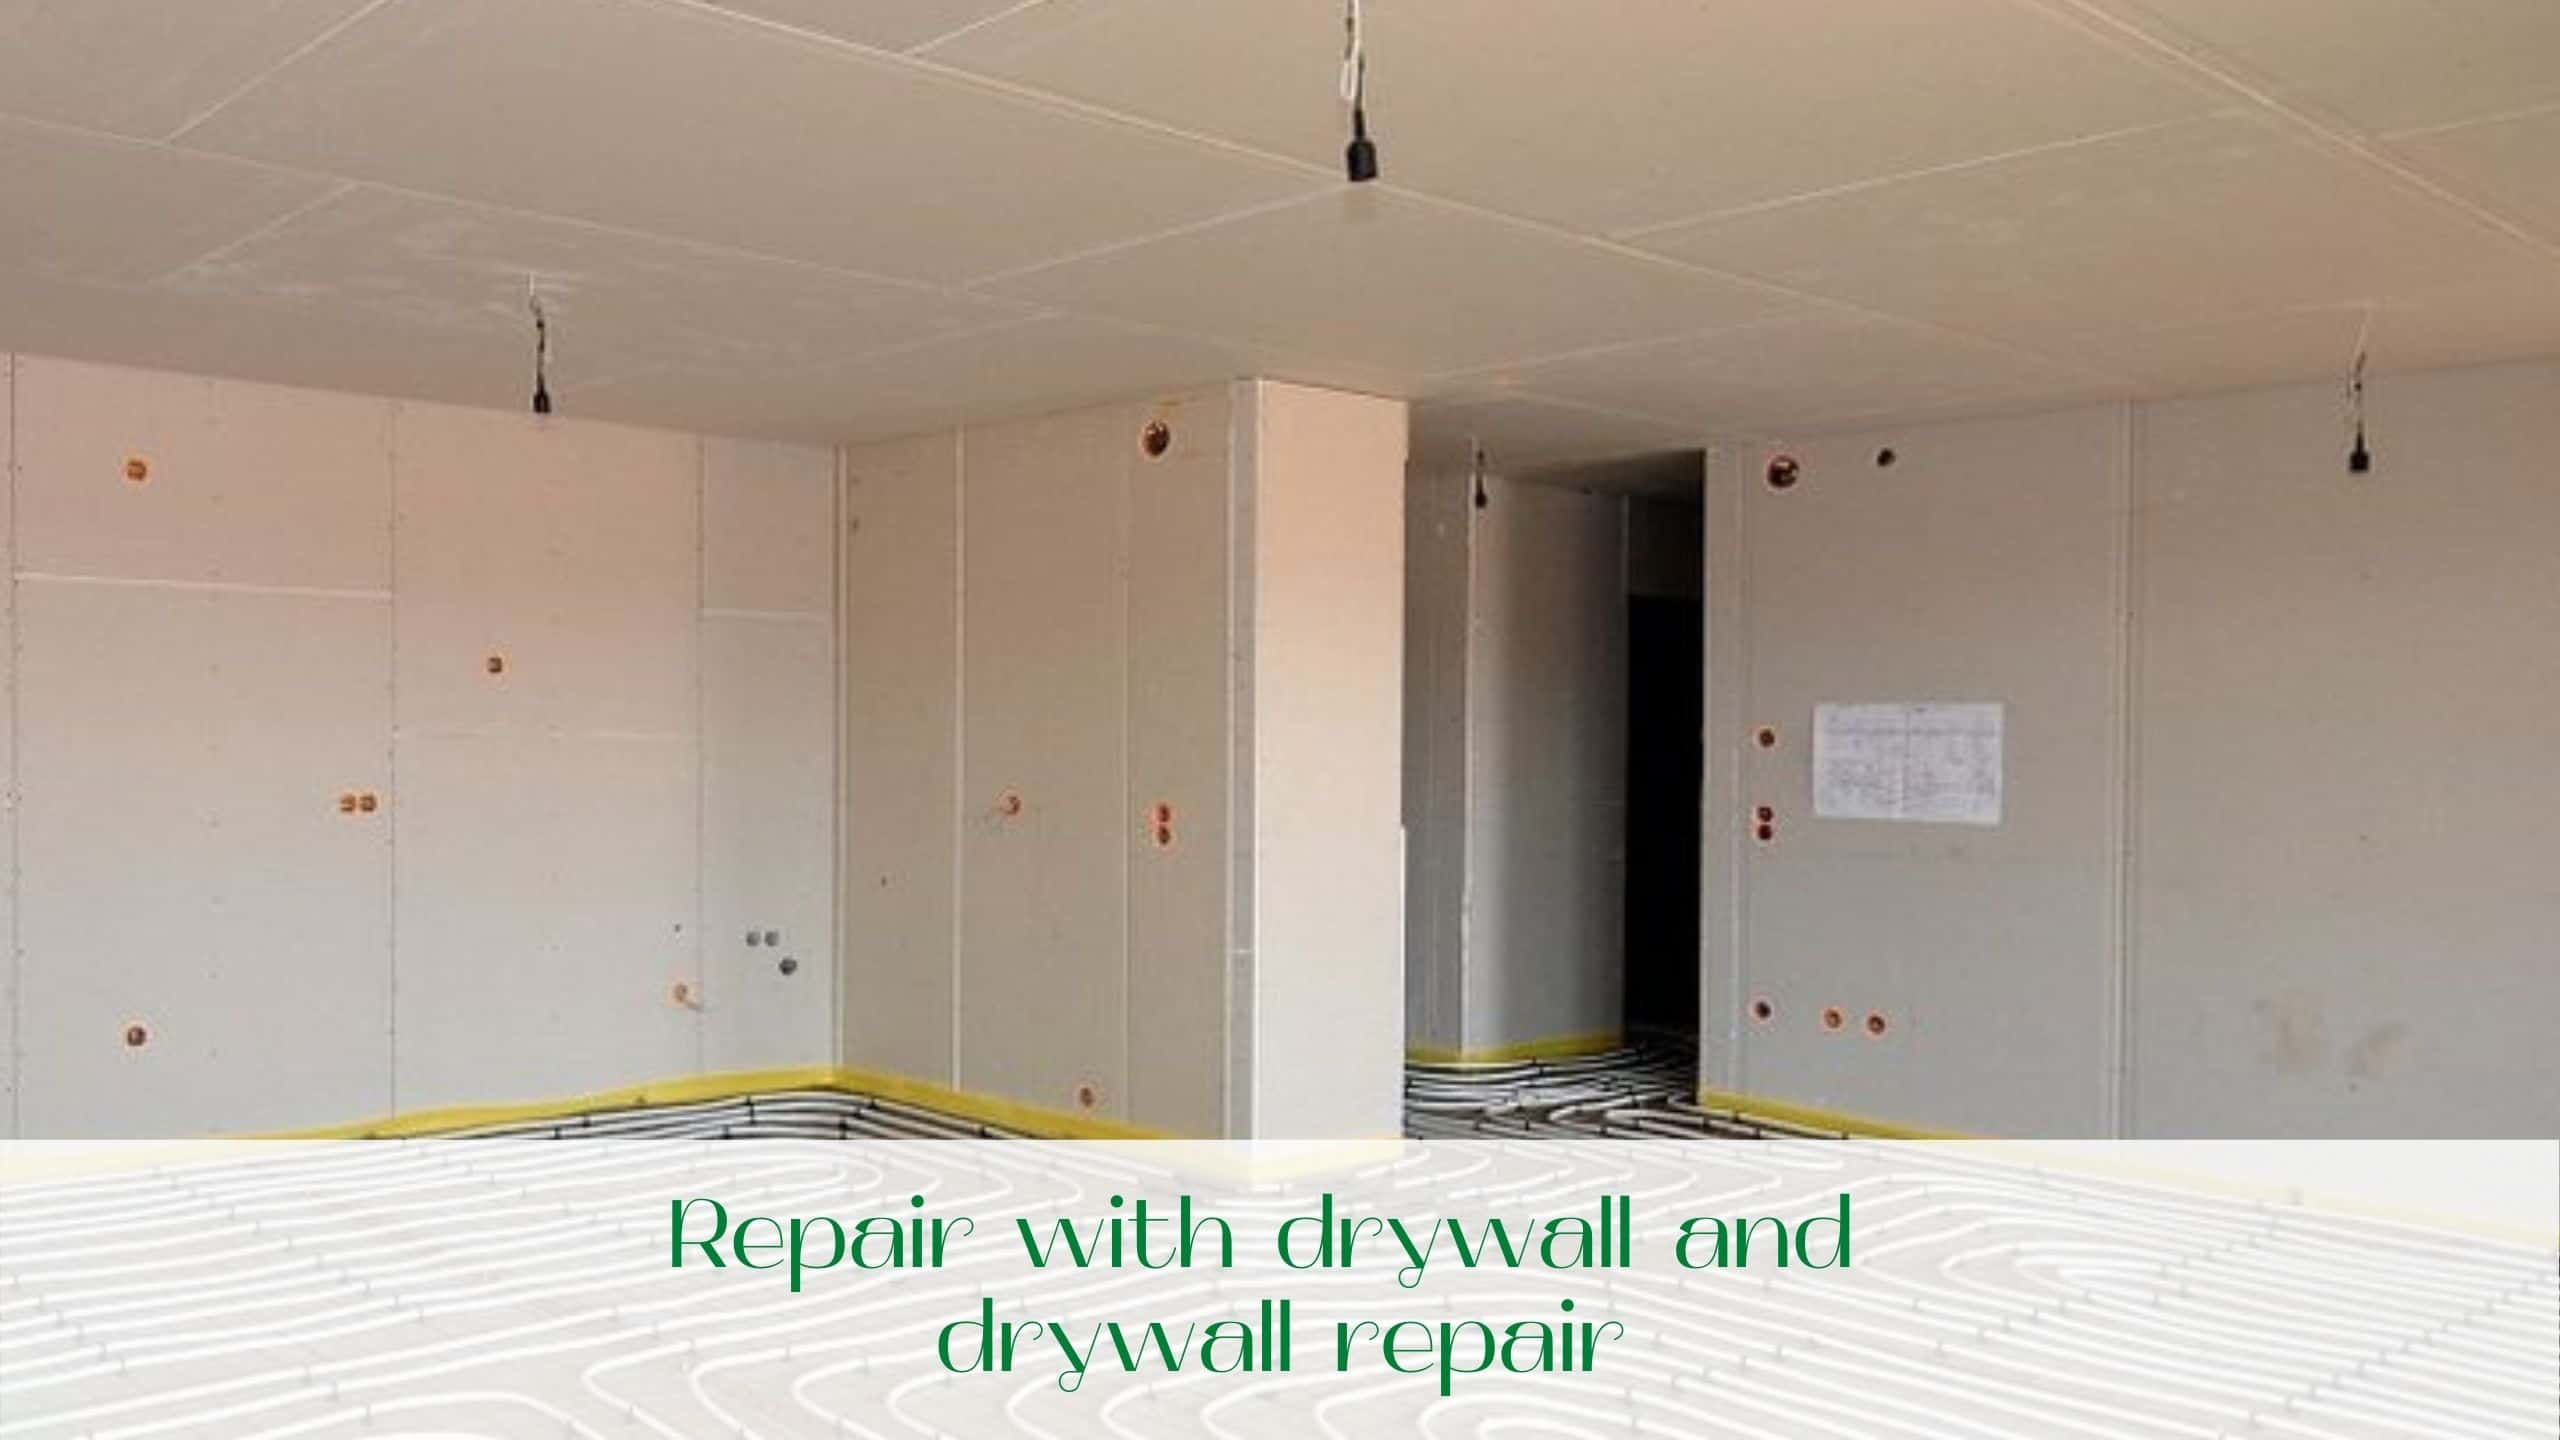 image-Repair-with-drywall-and-drywall-repair-in-Ontario-and-Maple